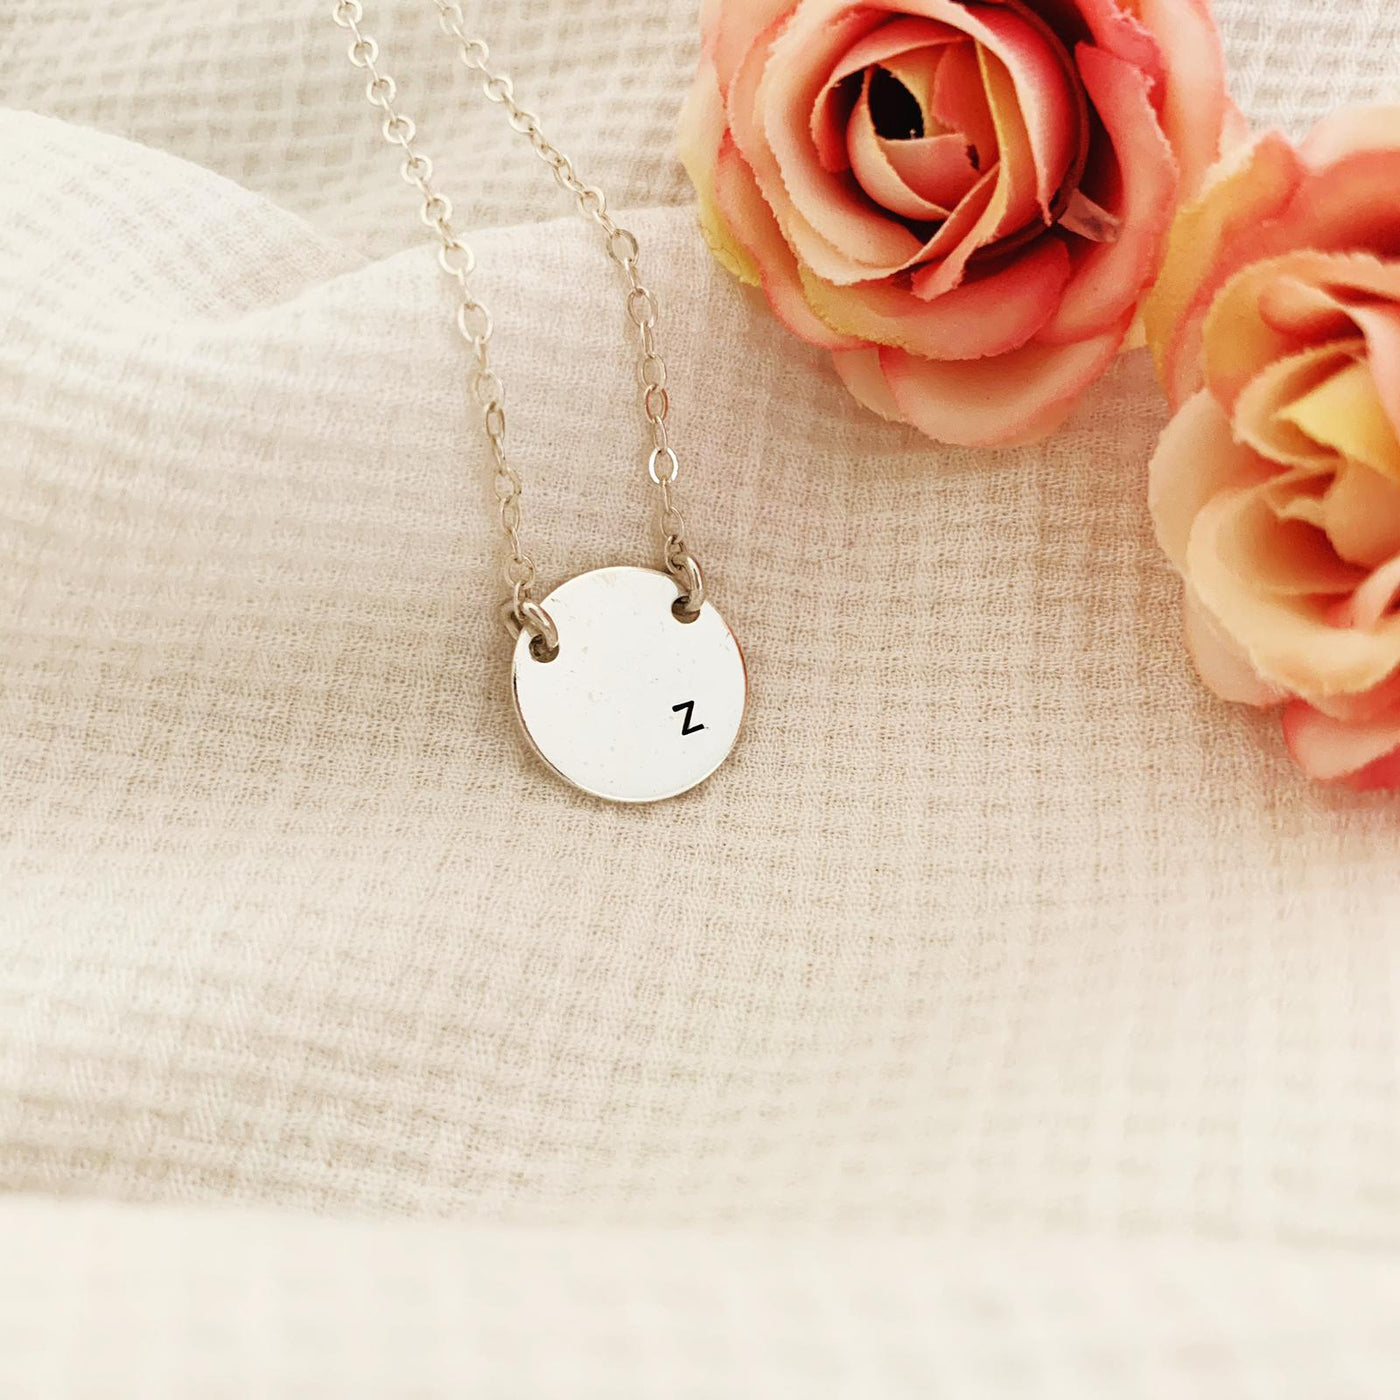 Single Initial Disc Necklace - Midi Disc - 2 holes - Ekalake Handmade Jewellery